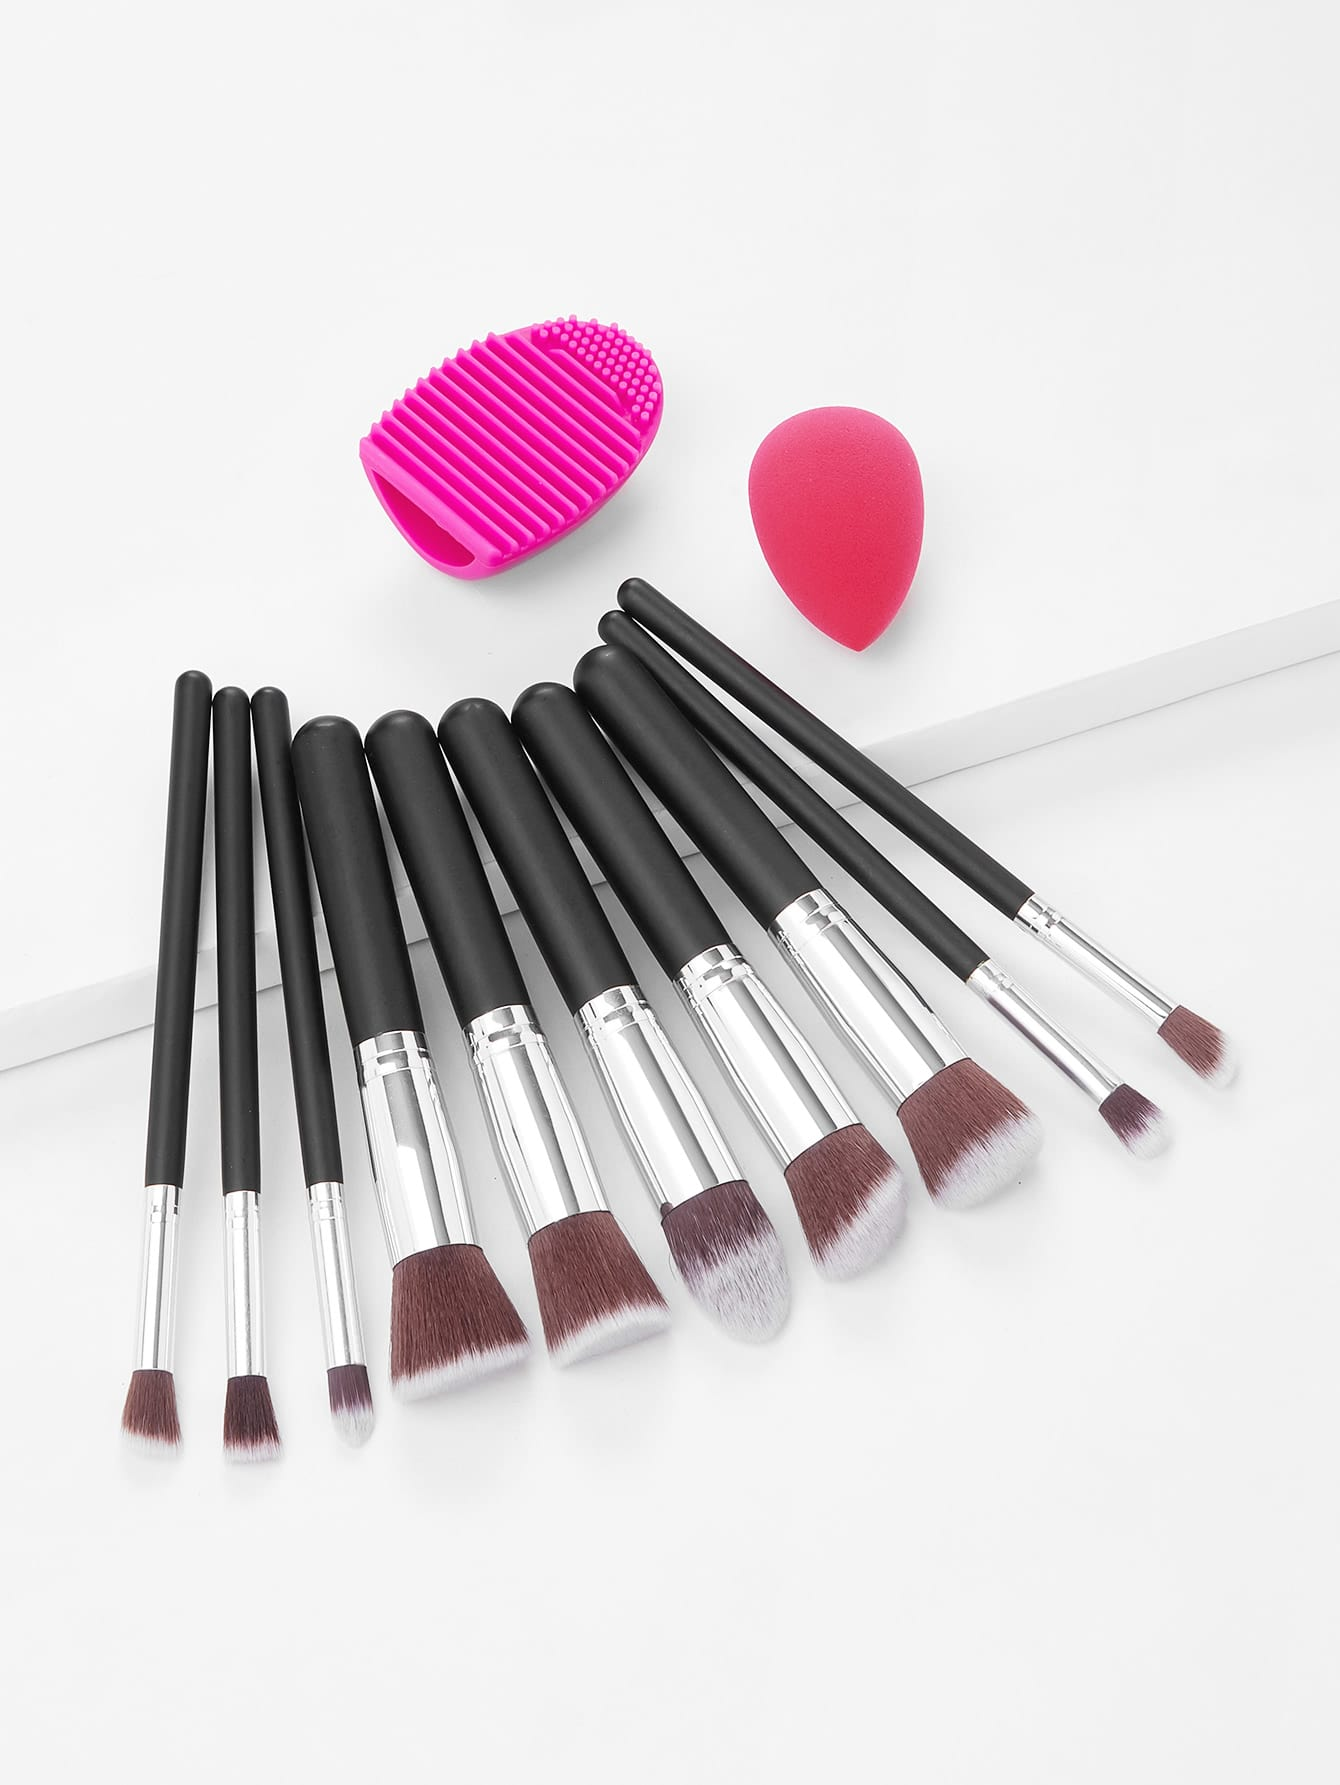 12PCS Makeup Brush Set Cosmetics Tool